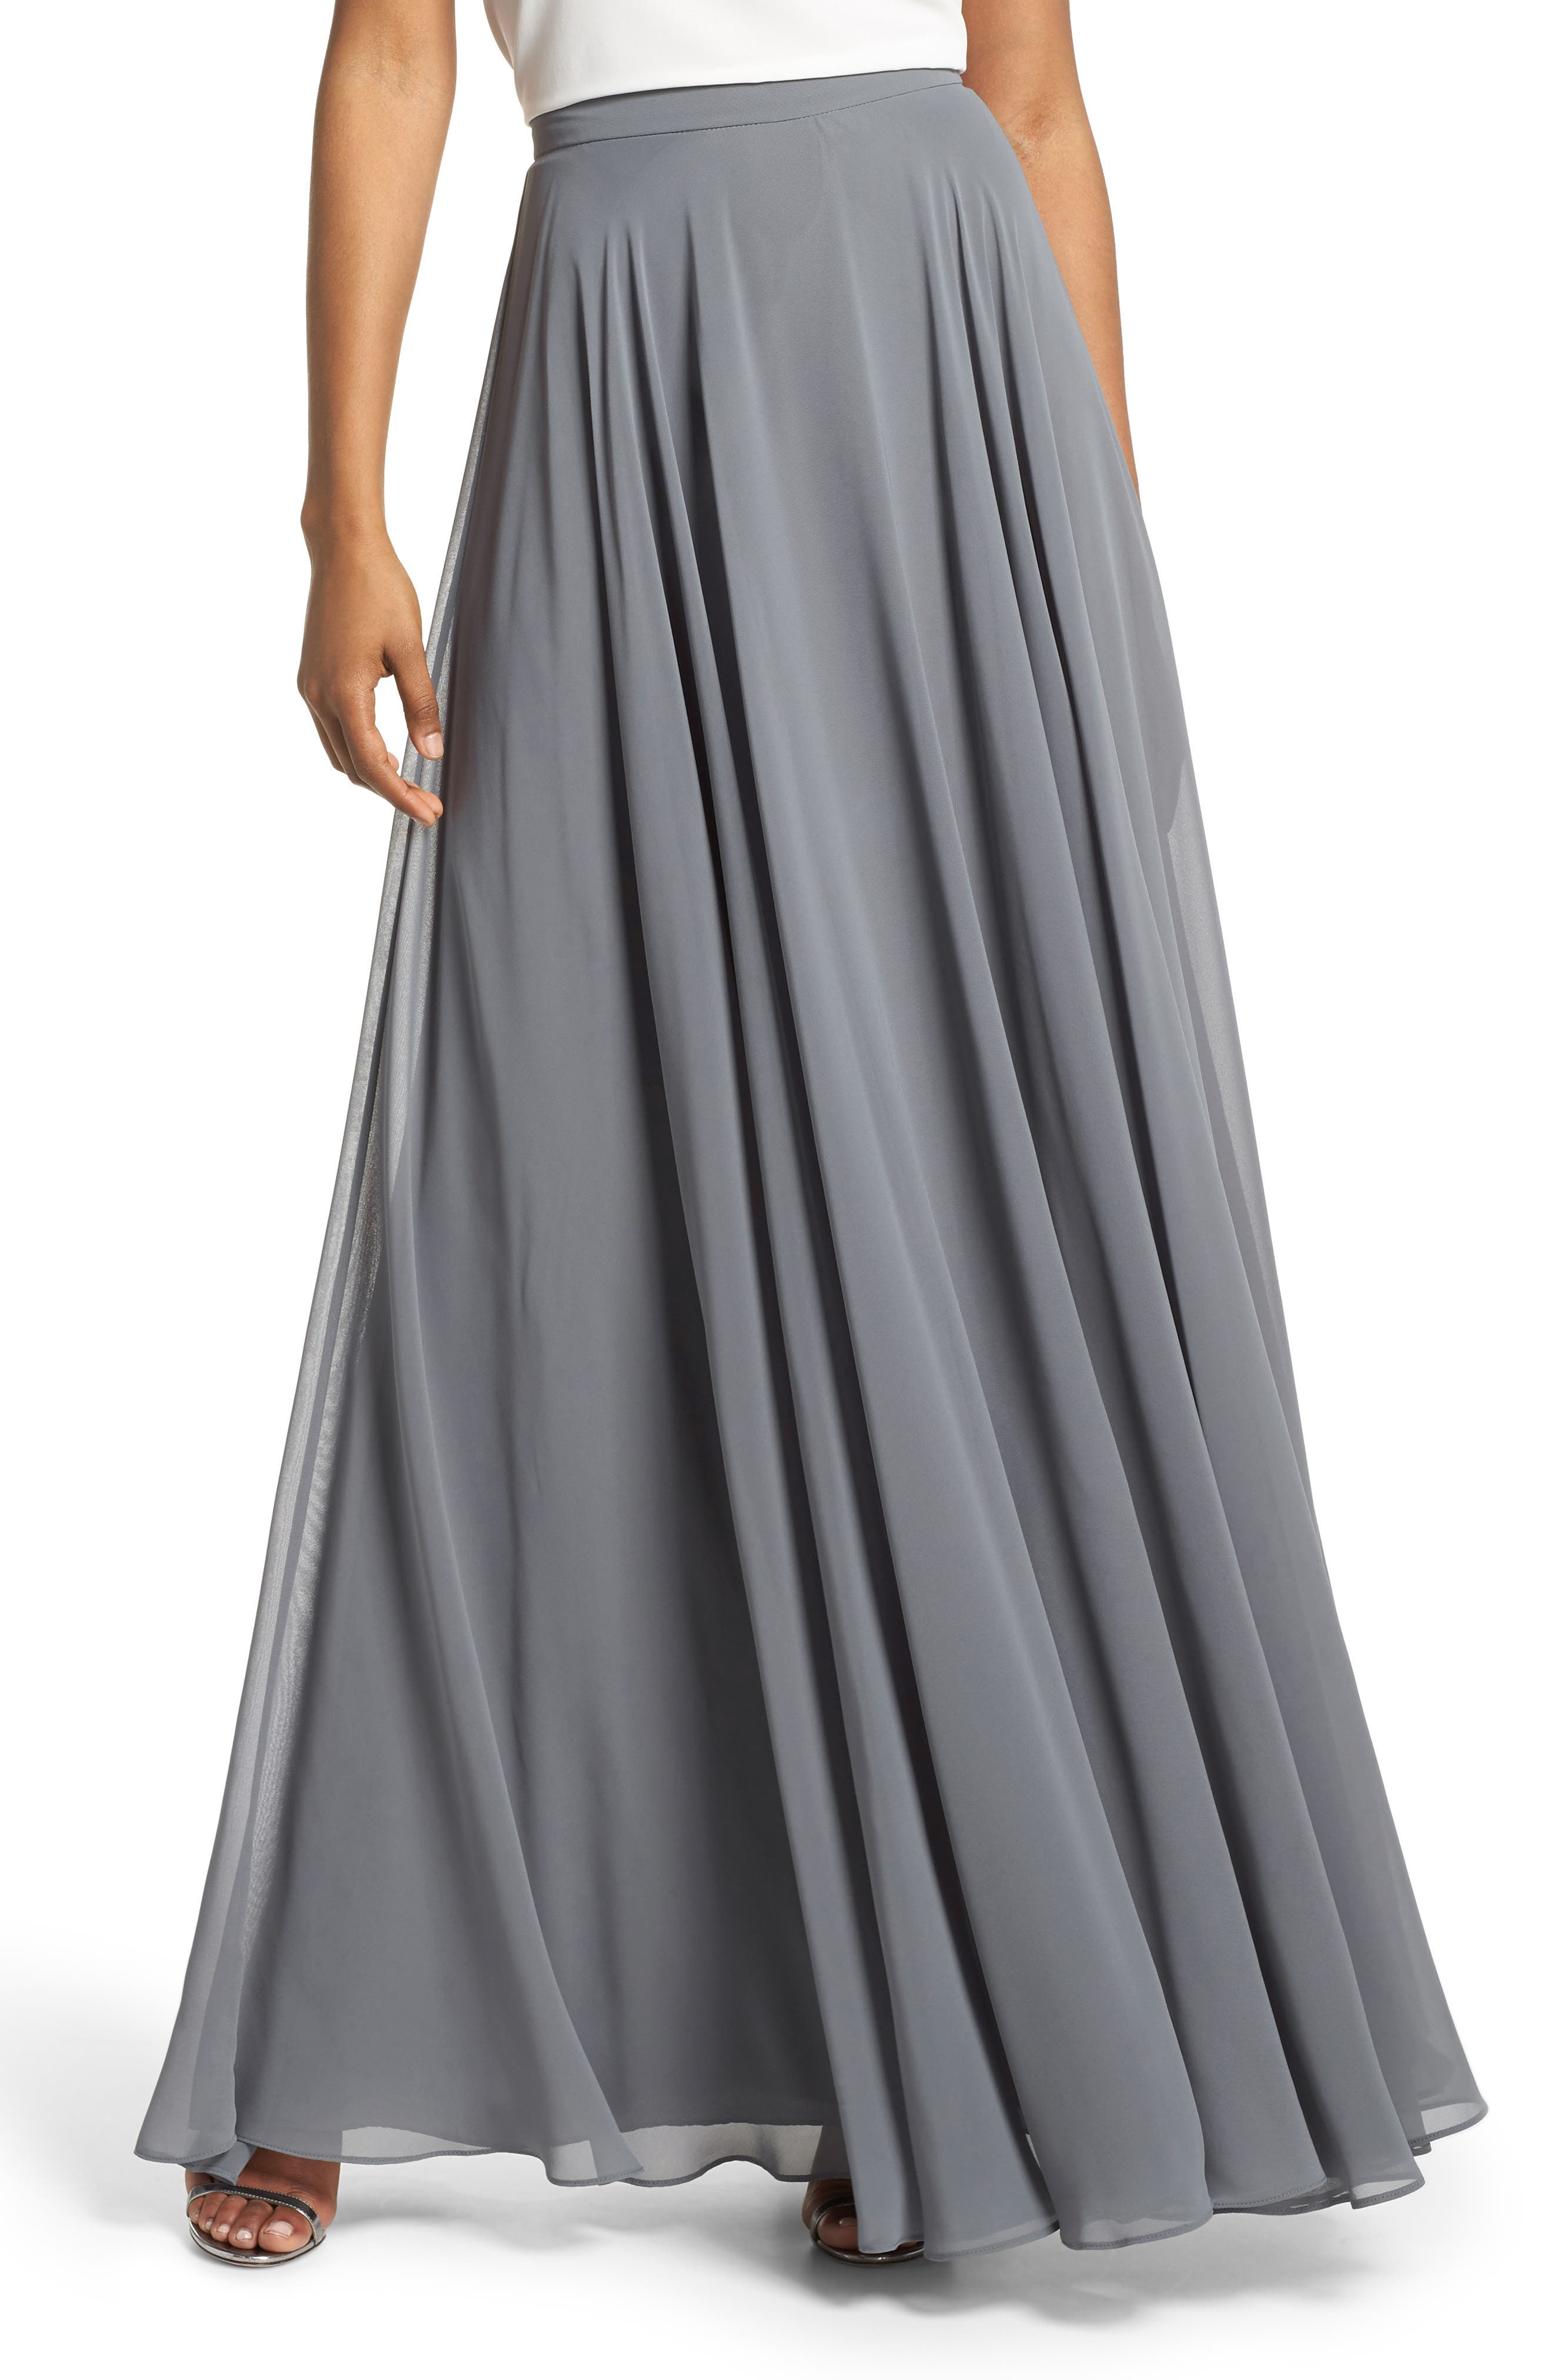 Hampton Long A-Line Chiffon Skirt,                             Main thumbnail 1, color,                             DENMARK BLUE